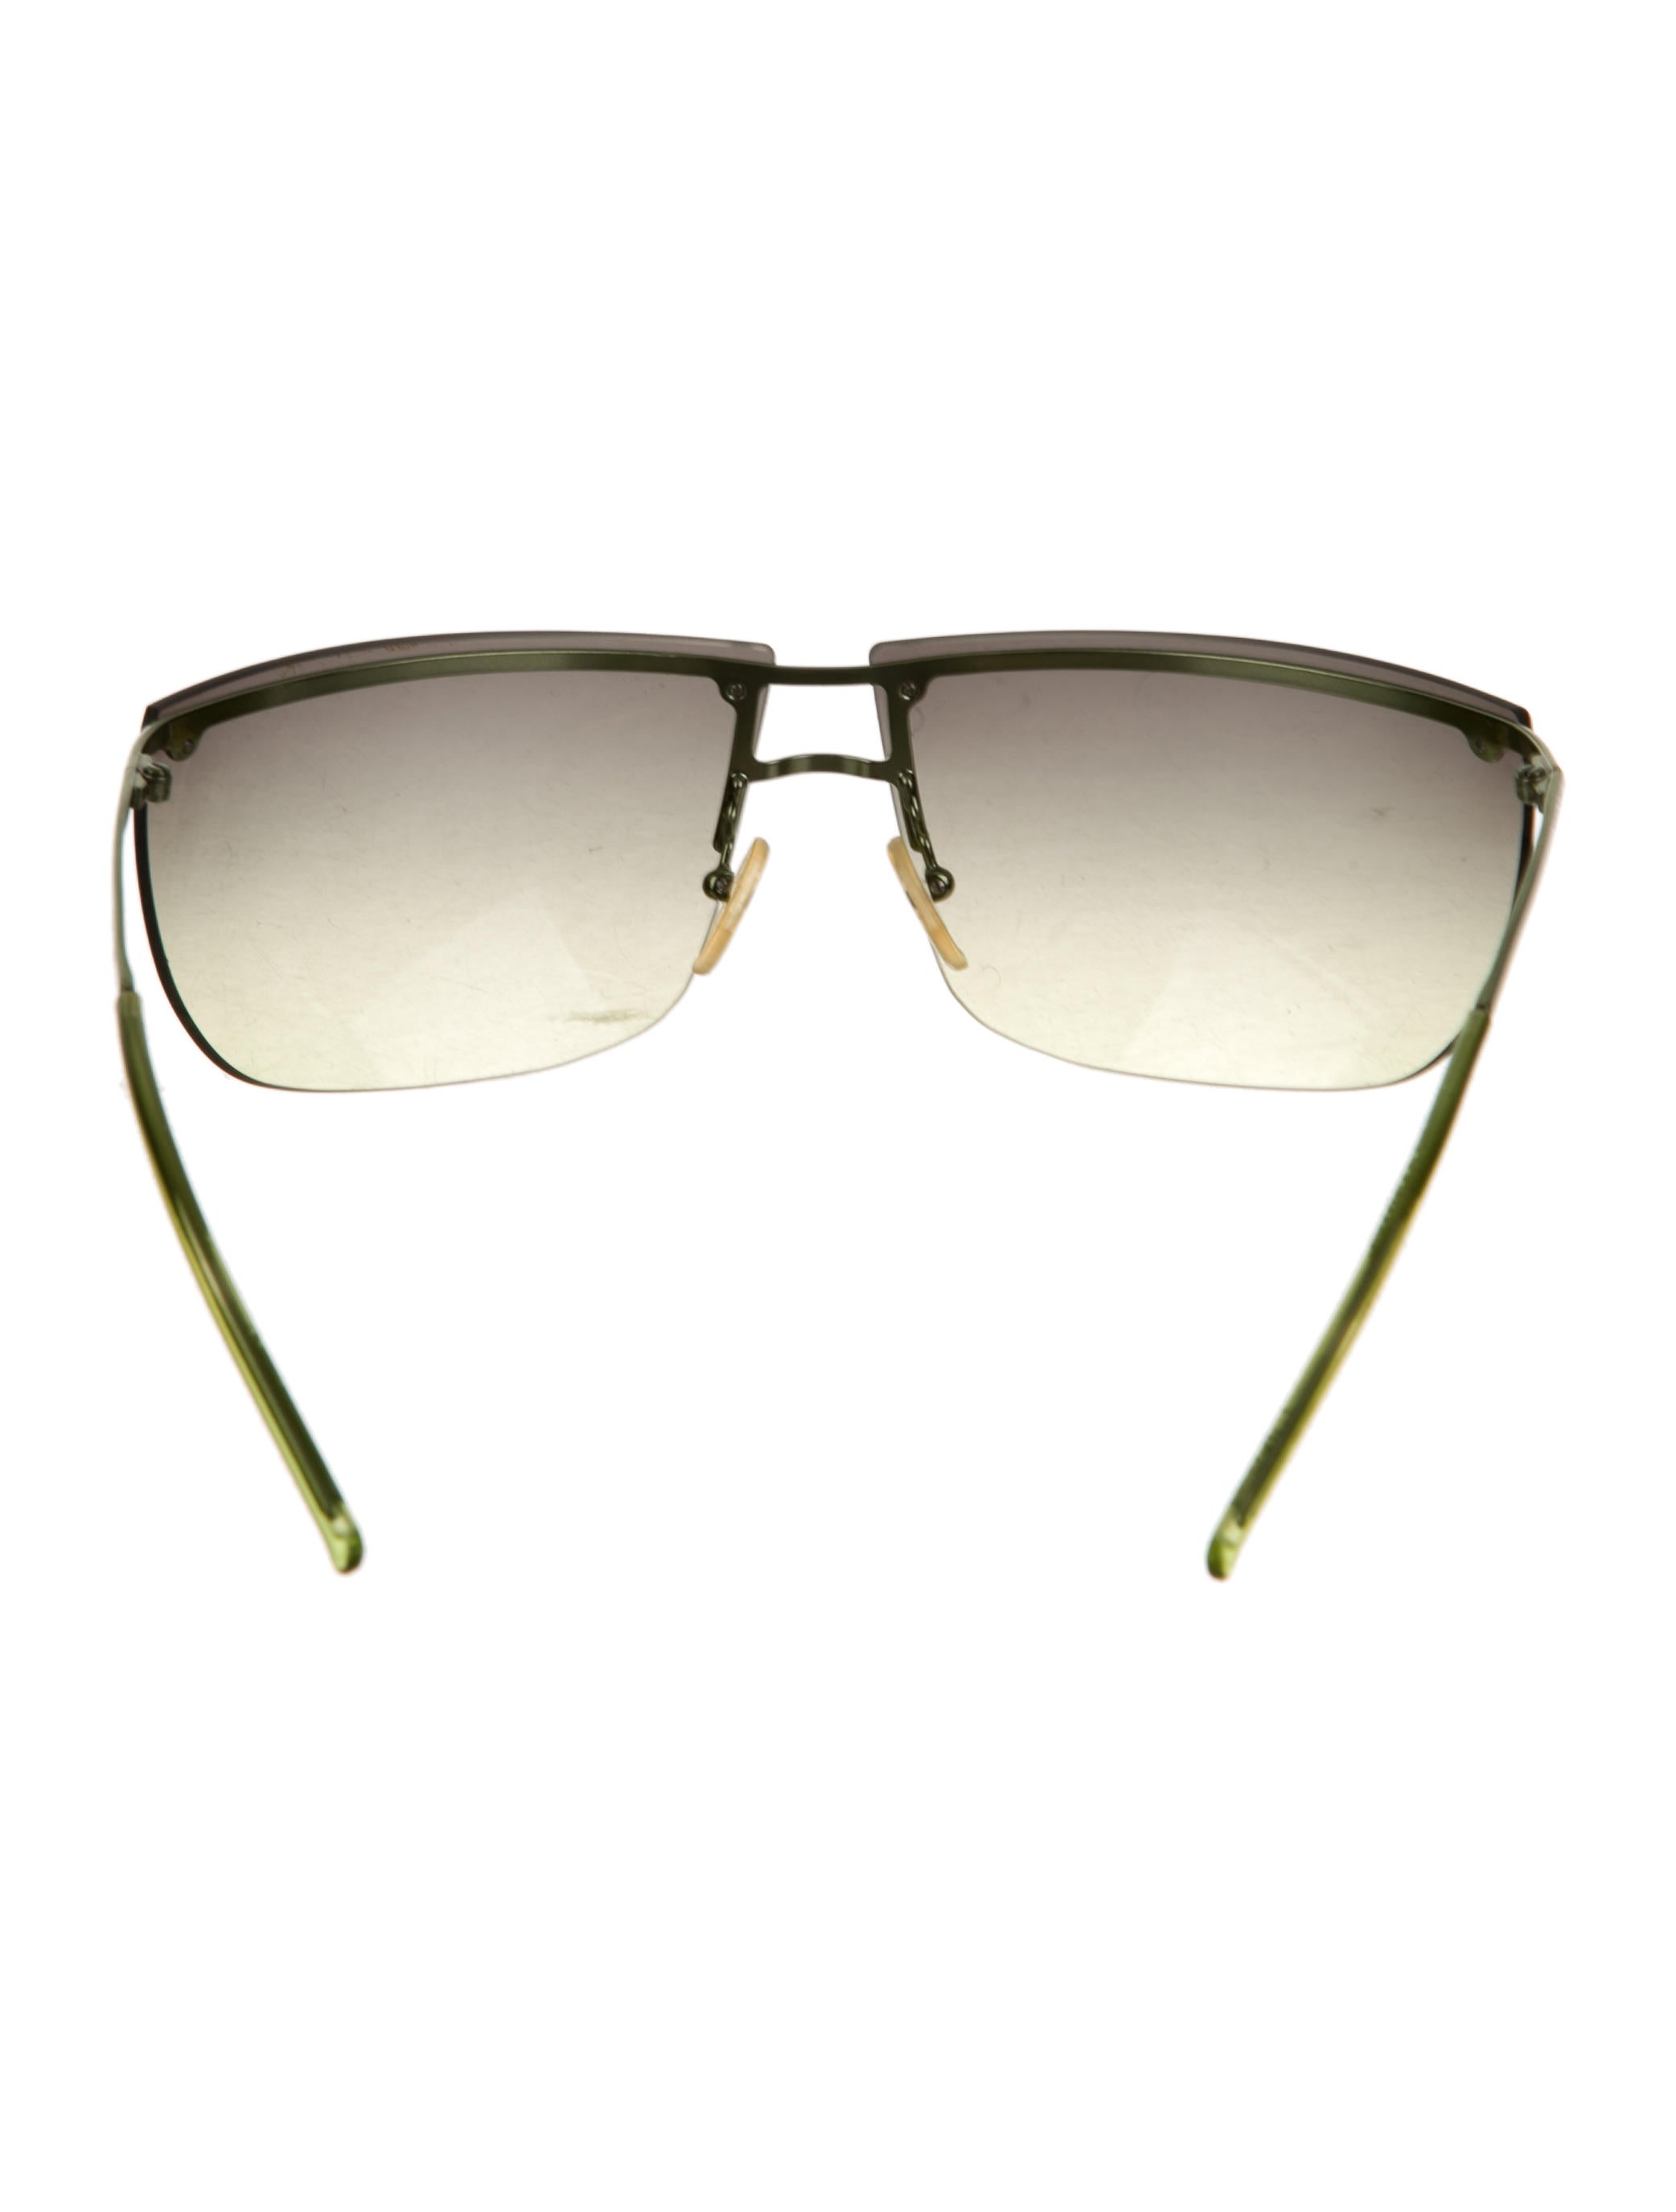 Rimless Glasses With Changeable Arms : Gucci Rimless Shield Sunglasses - Accessories - GUC132354 ...